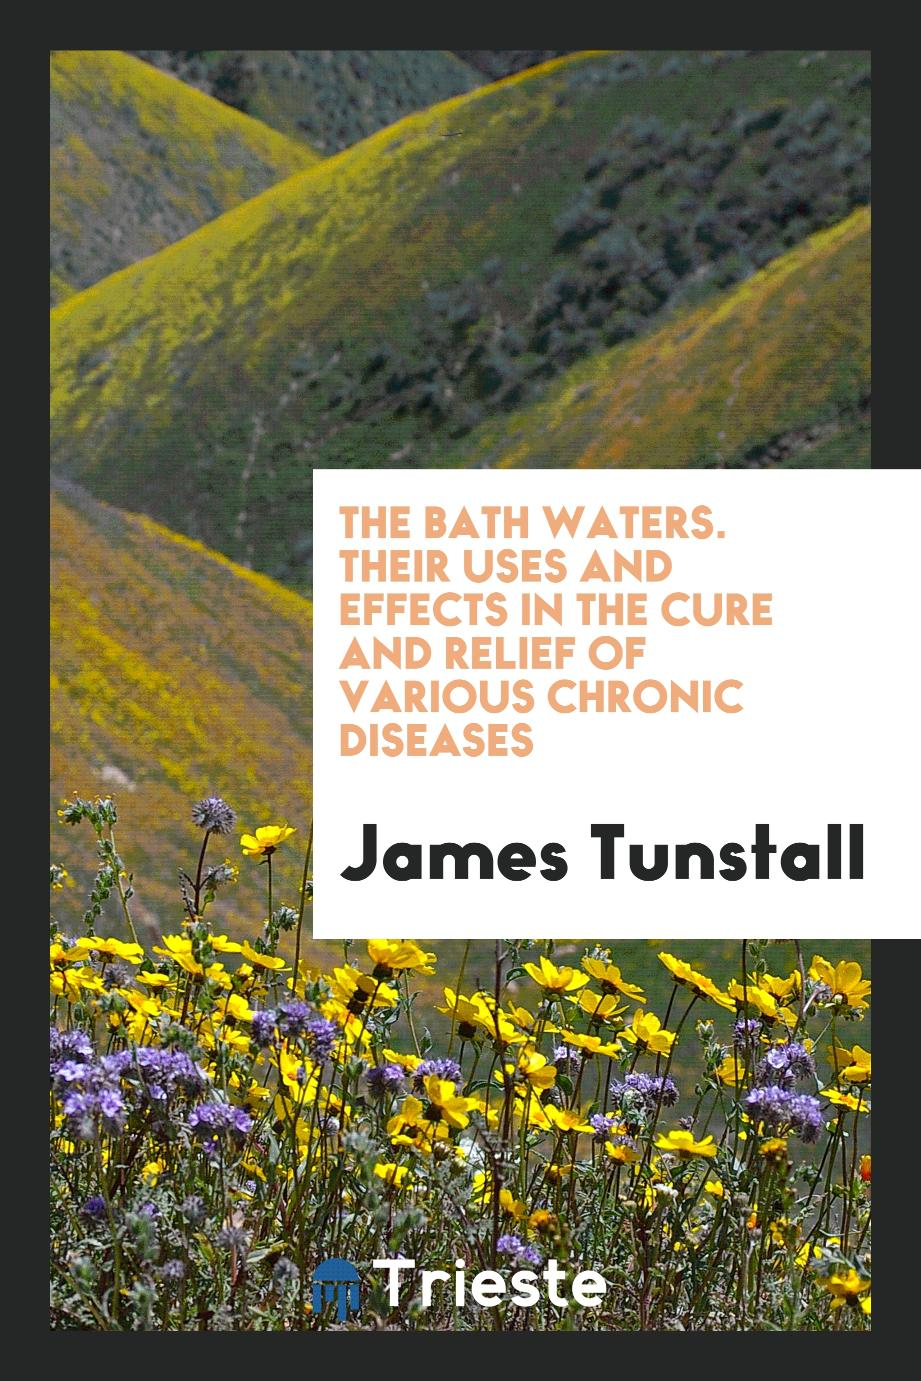 The Bath Waters. Their Uses and Effects in the Cure and Relief of Various Chronic Diseases